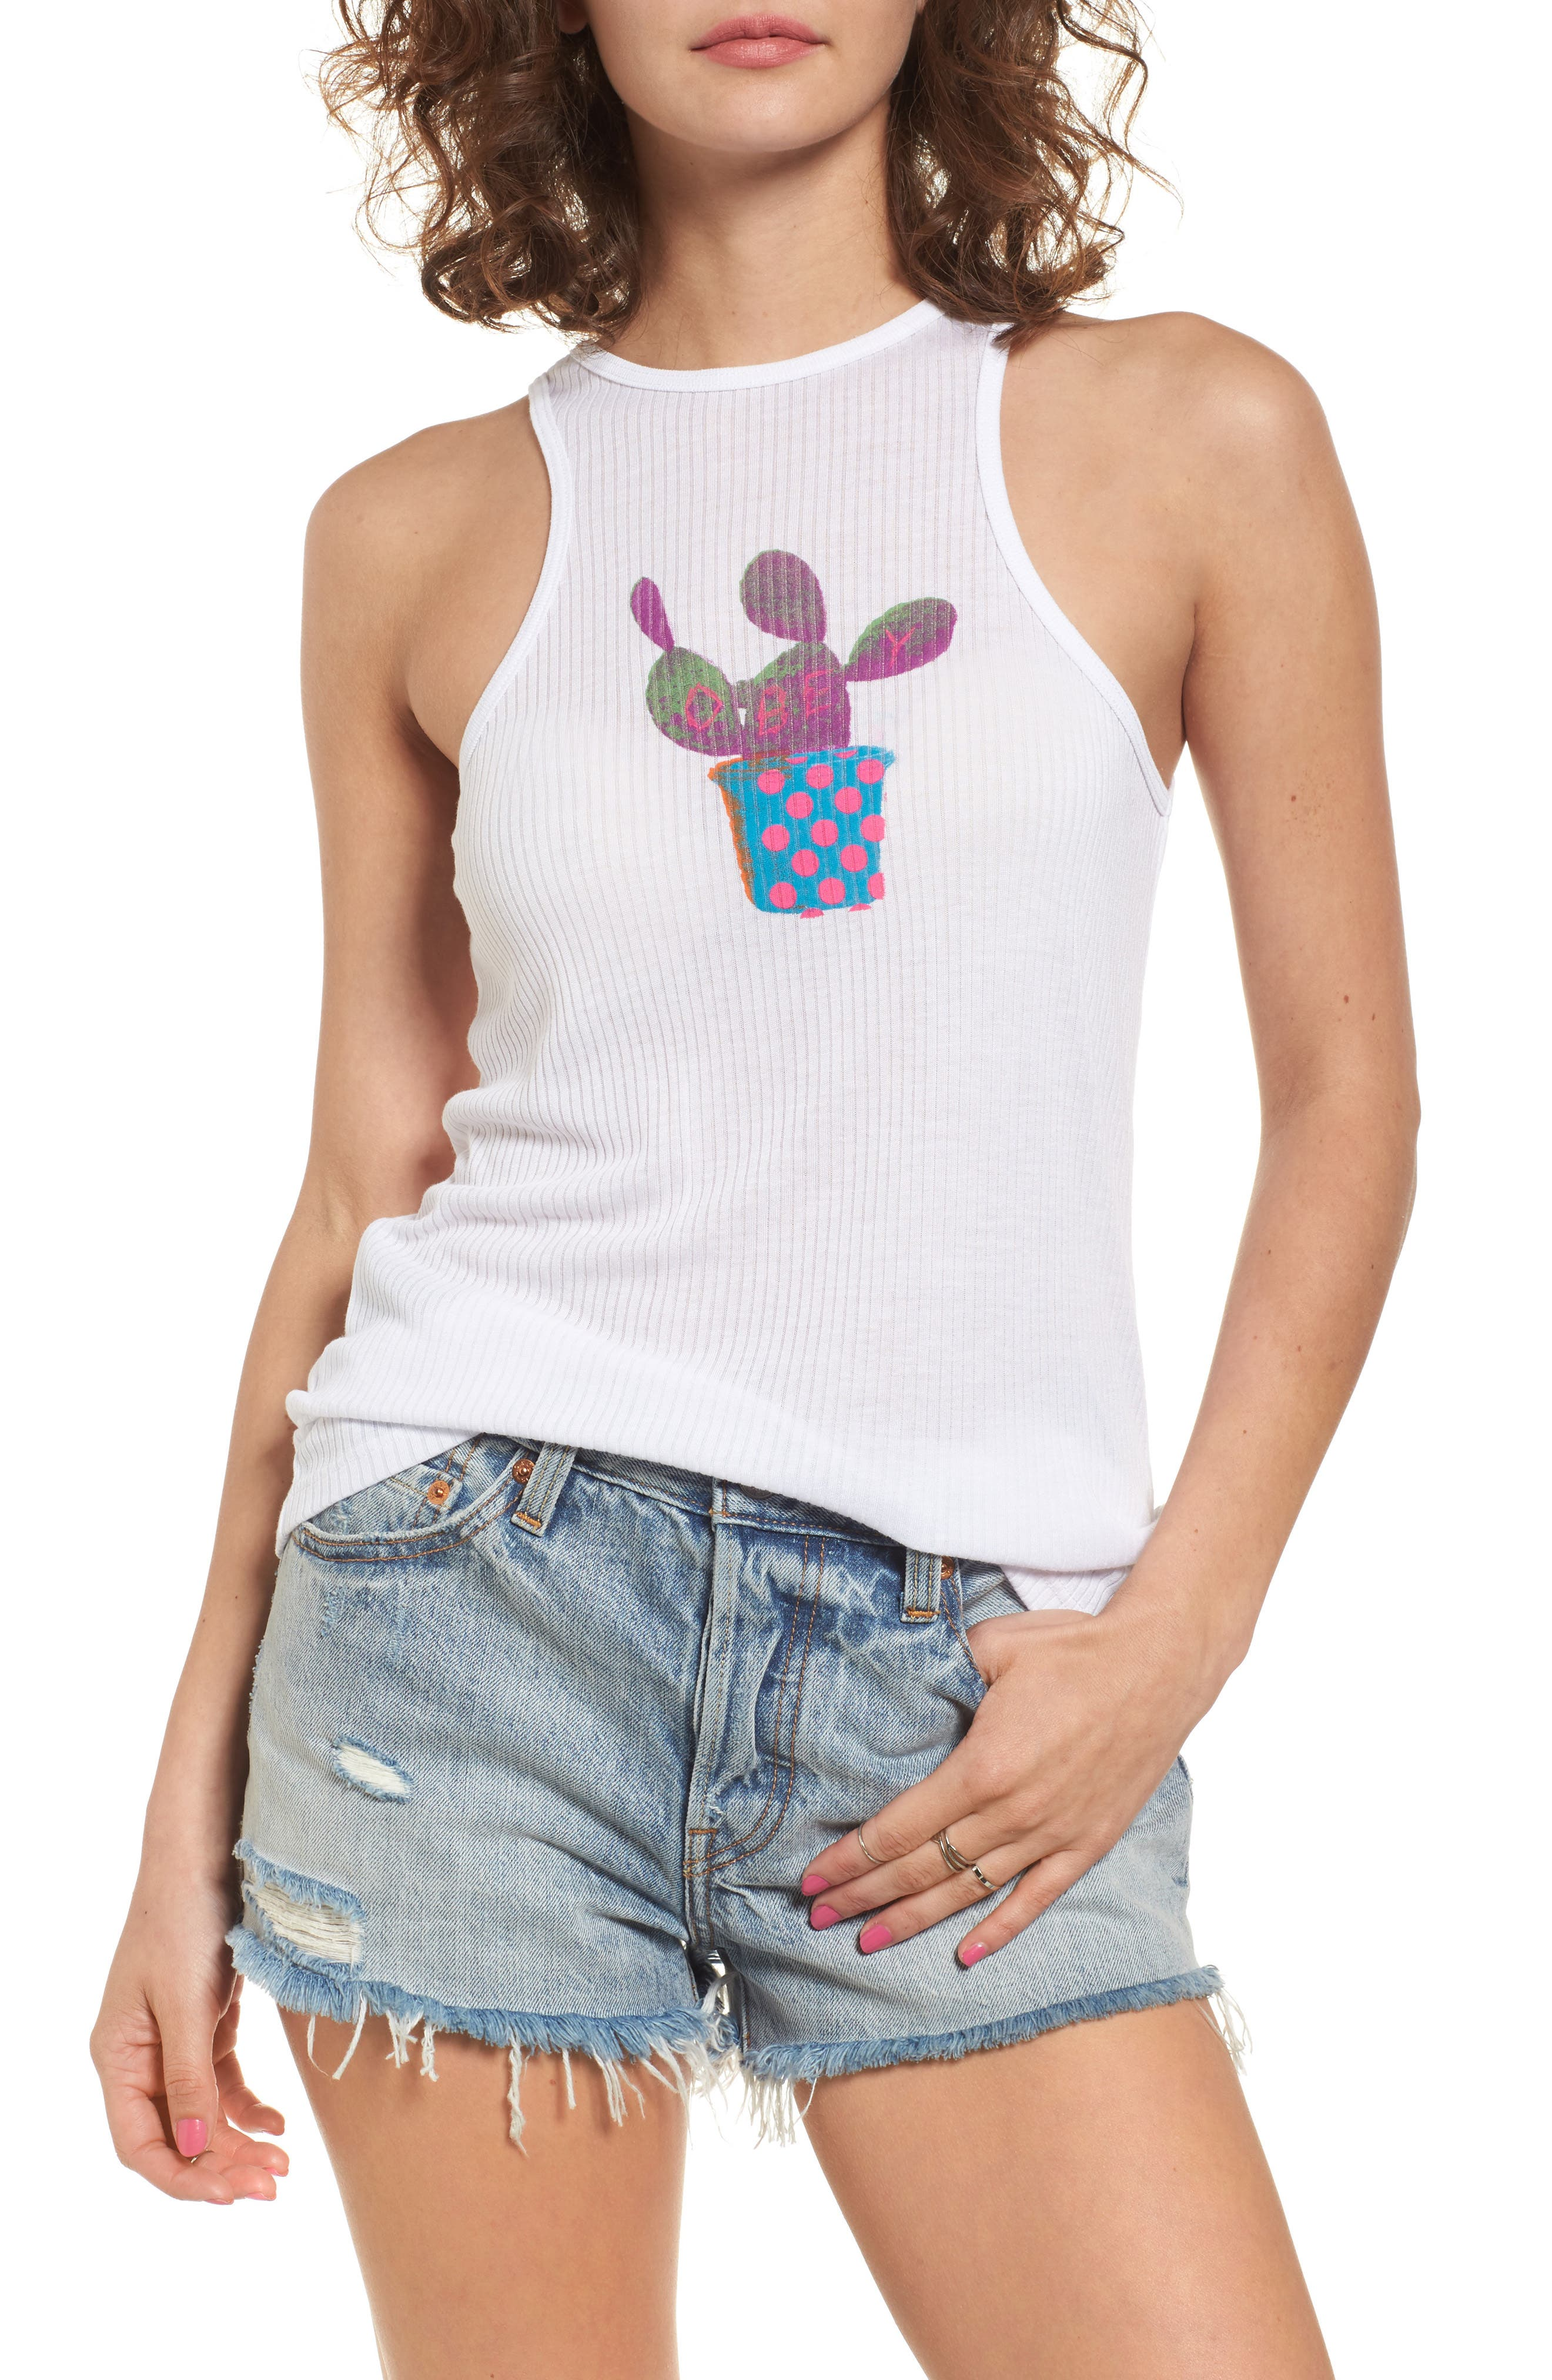 Obey Cactus Graphic Tank